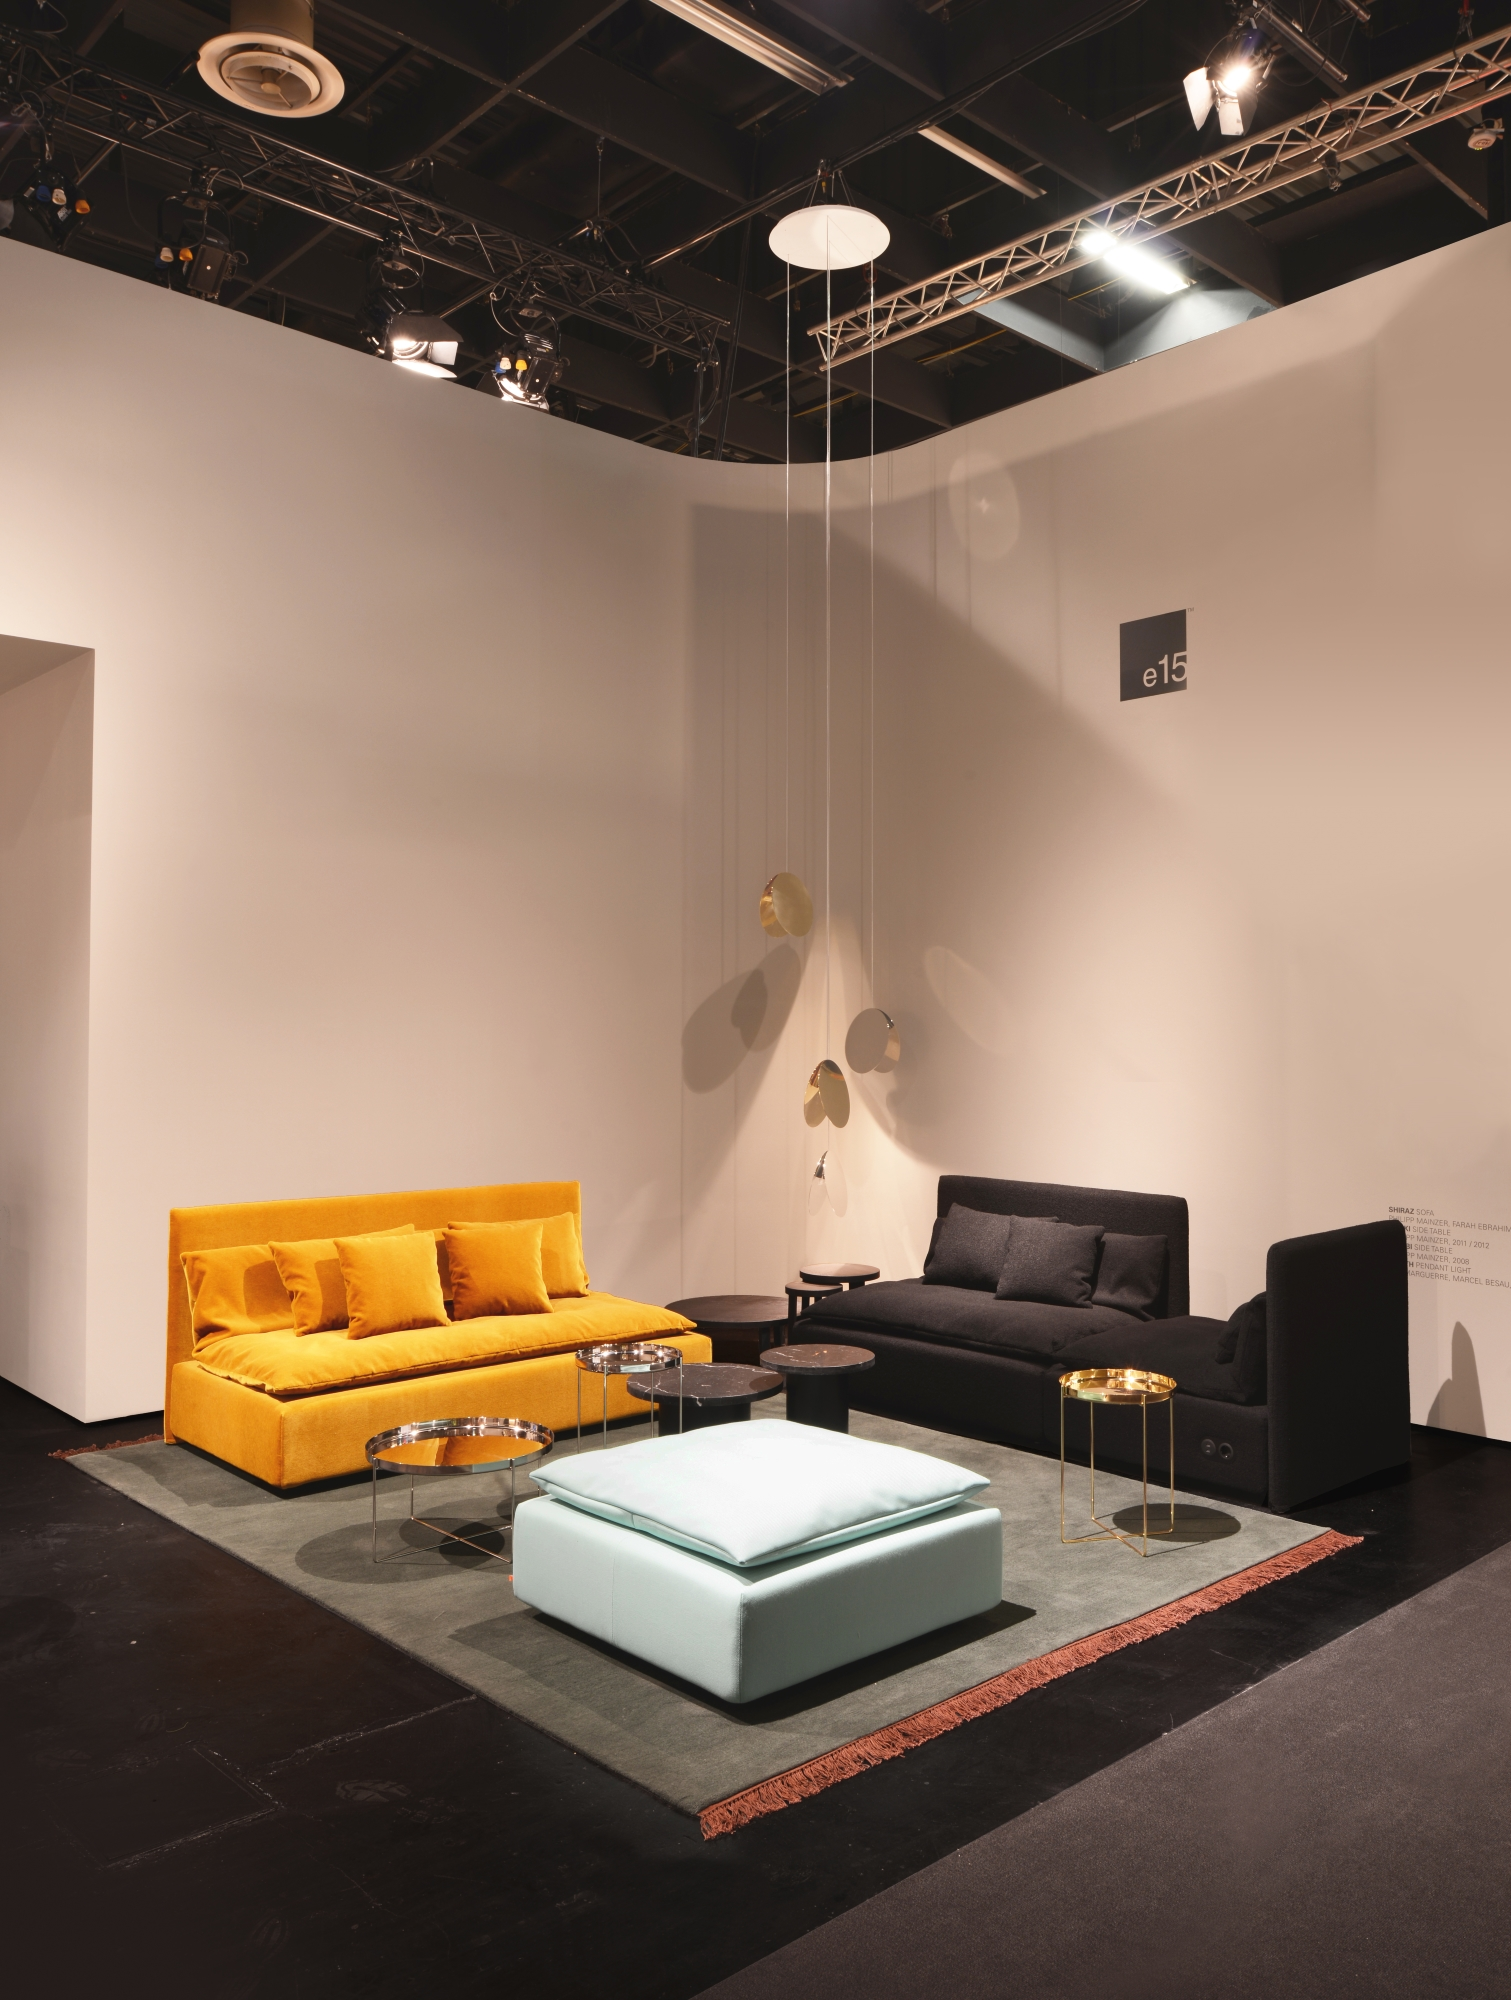 Shiraz sofa by Philipp Mainzer and Farah Ebrahimi, Habibi and Enoki side tables by Philipp Mainzer.